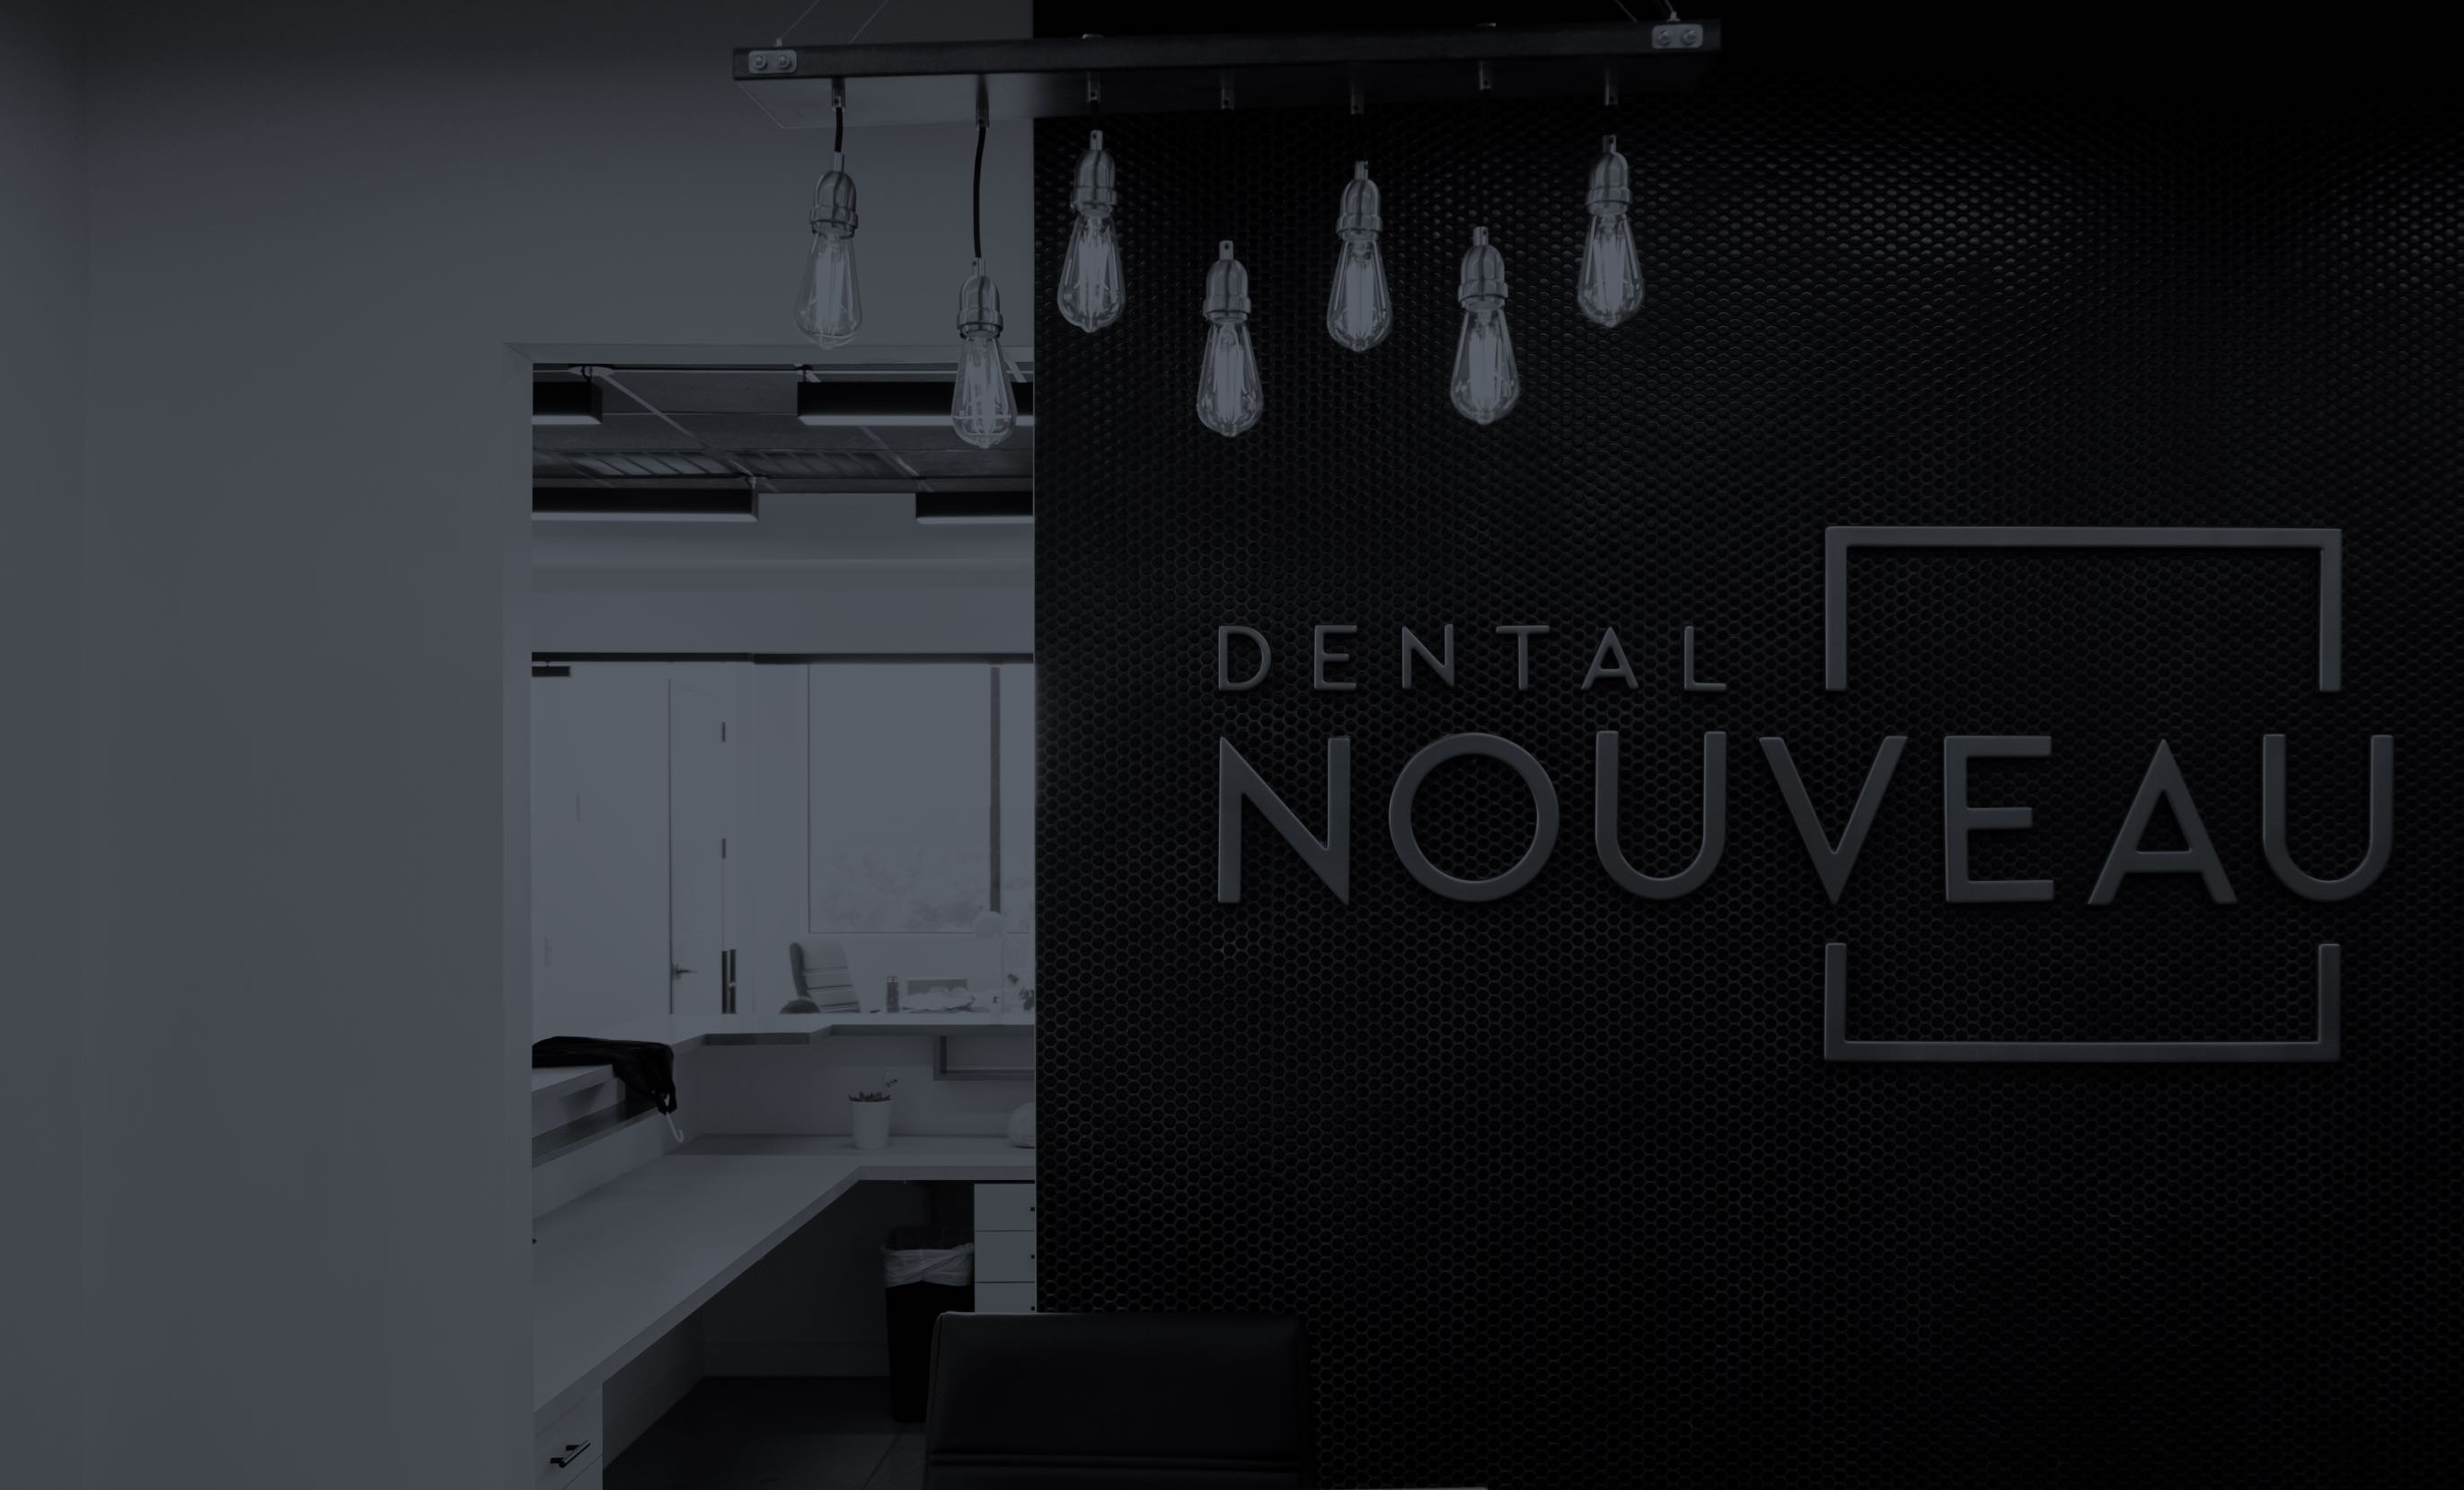 Photo of a wall in our practice with a Dental Nouveau sign